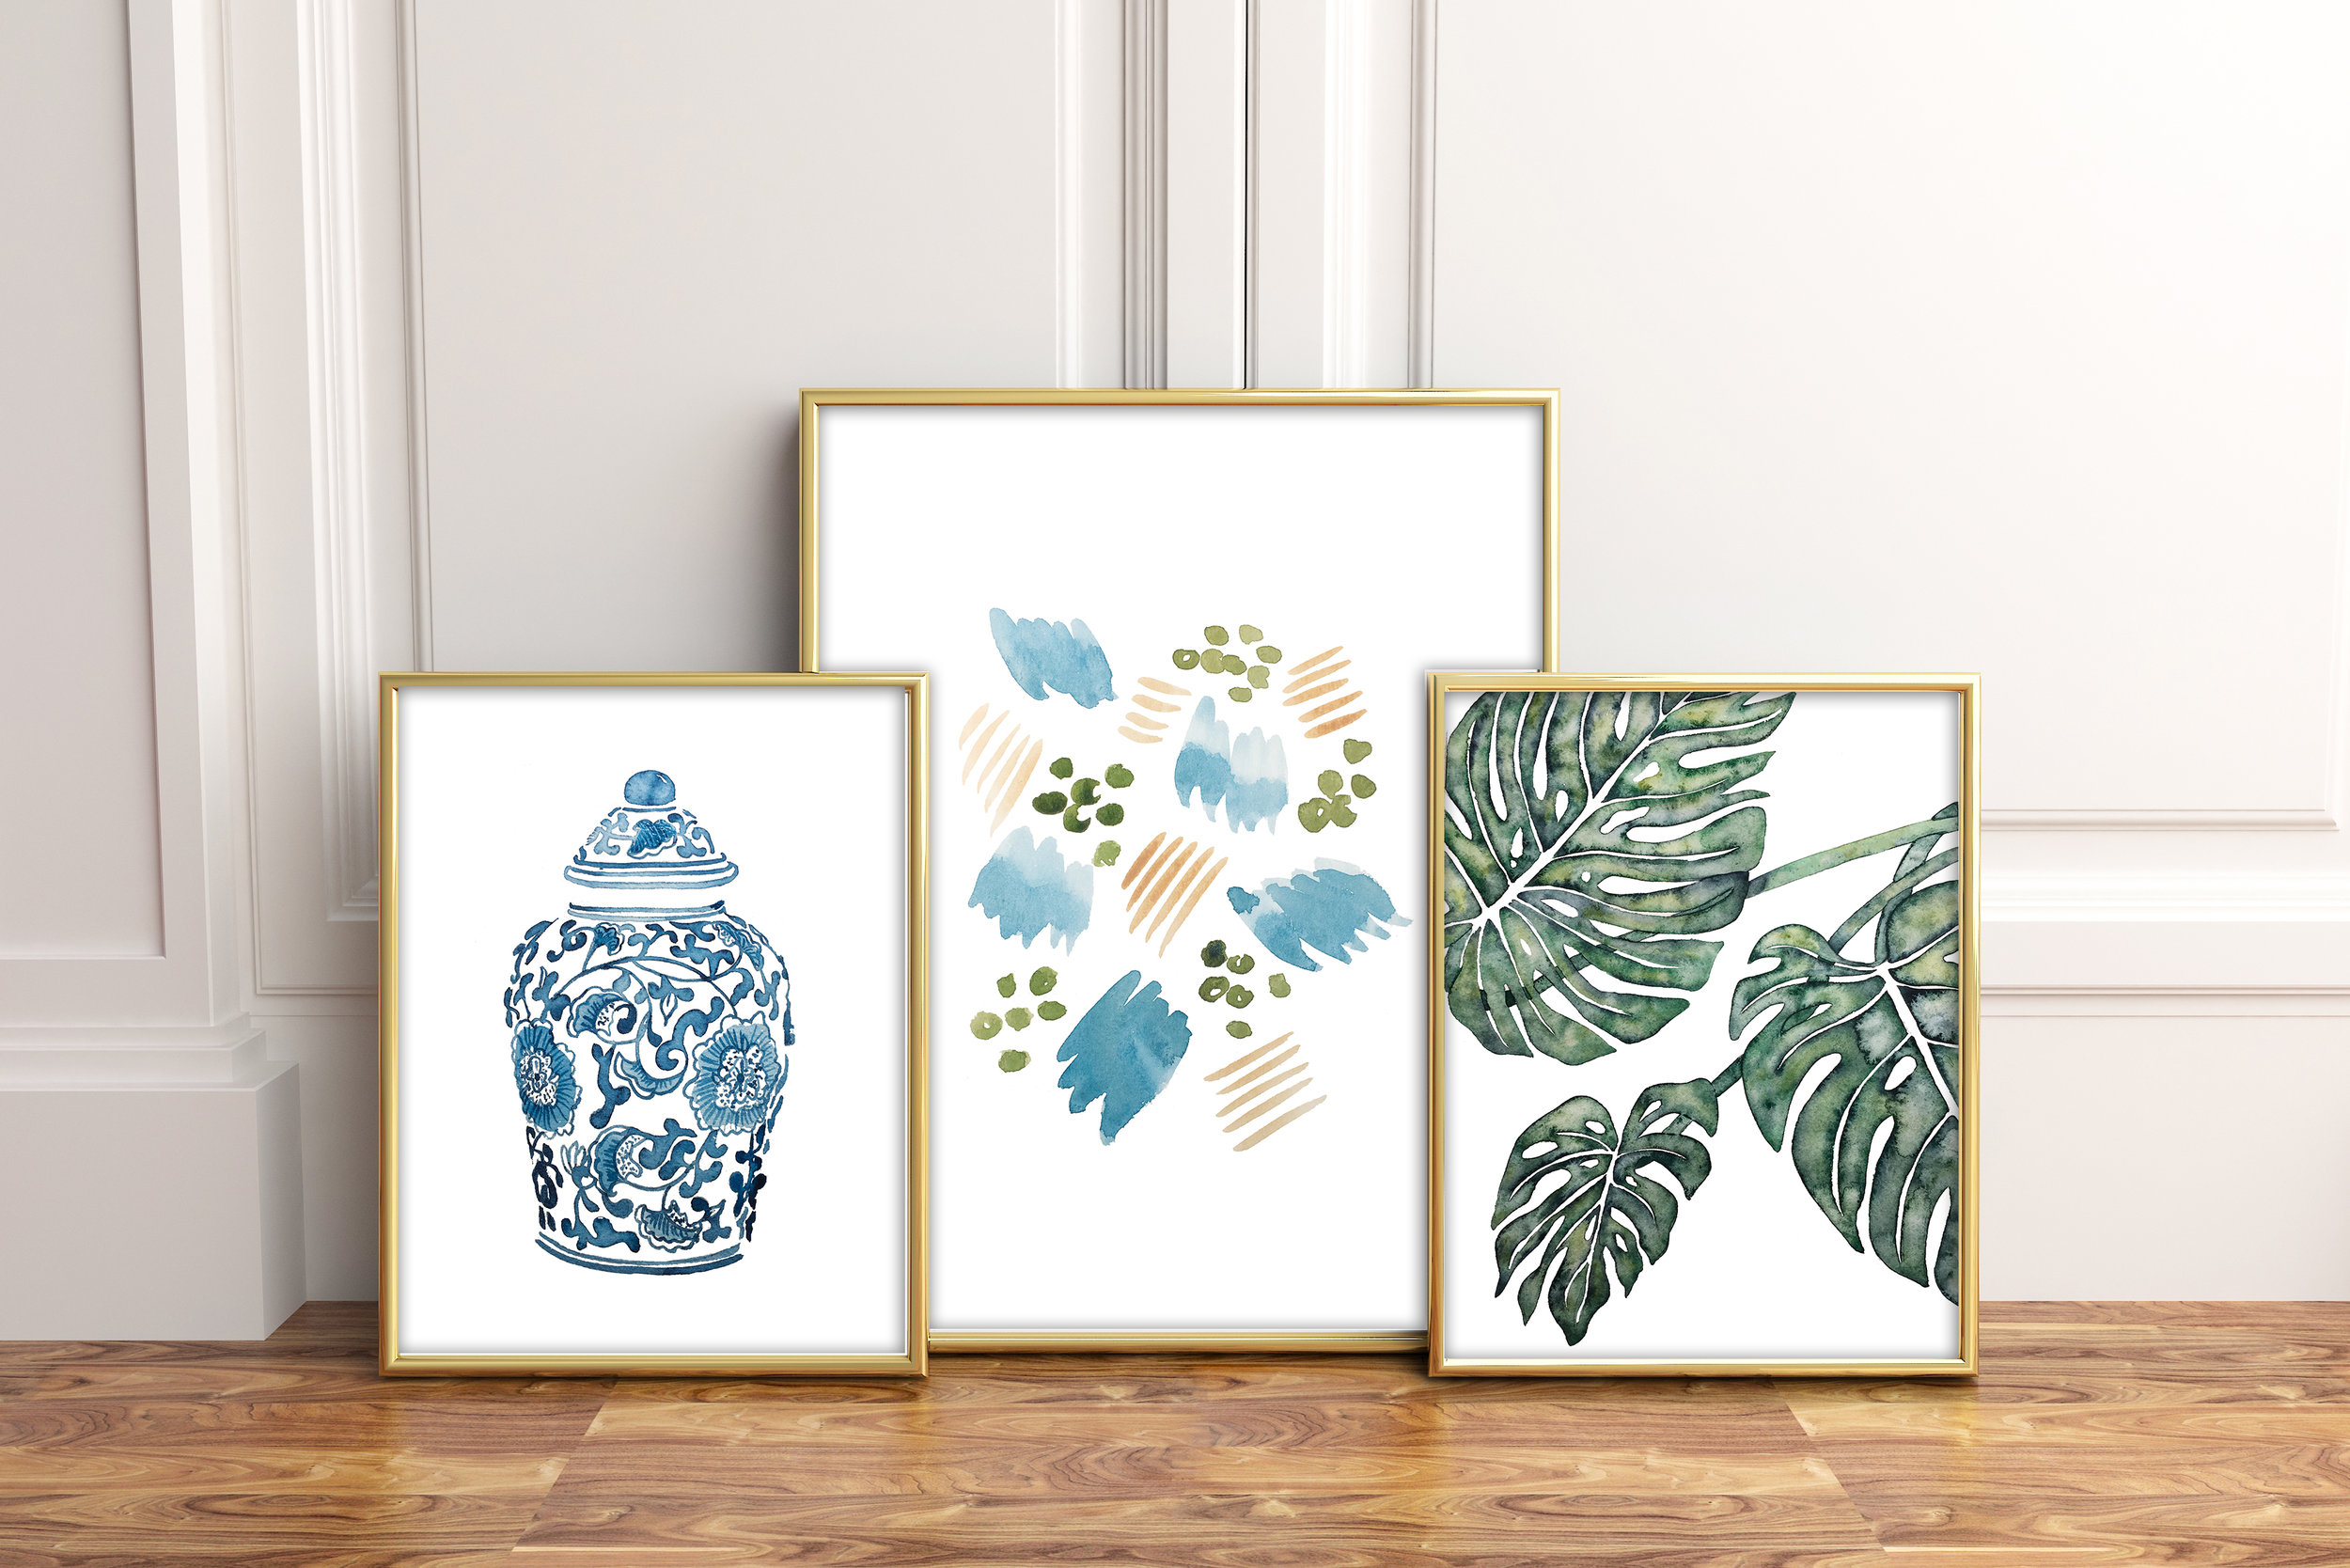 Browse All Prints - See the entire library of art prints in order of newest release